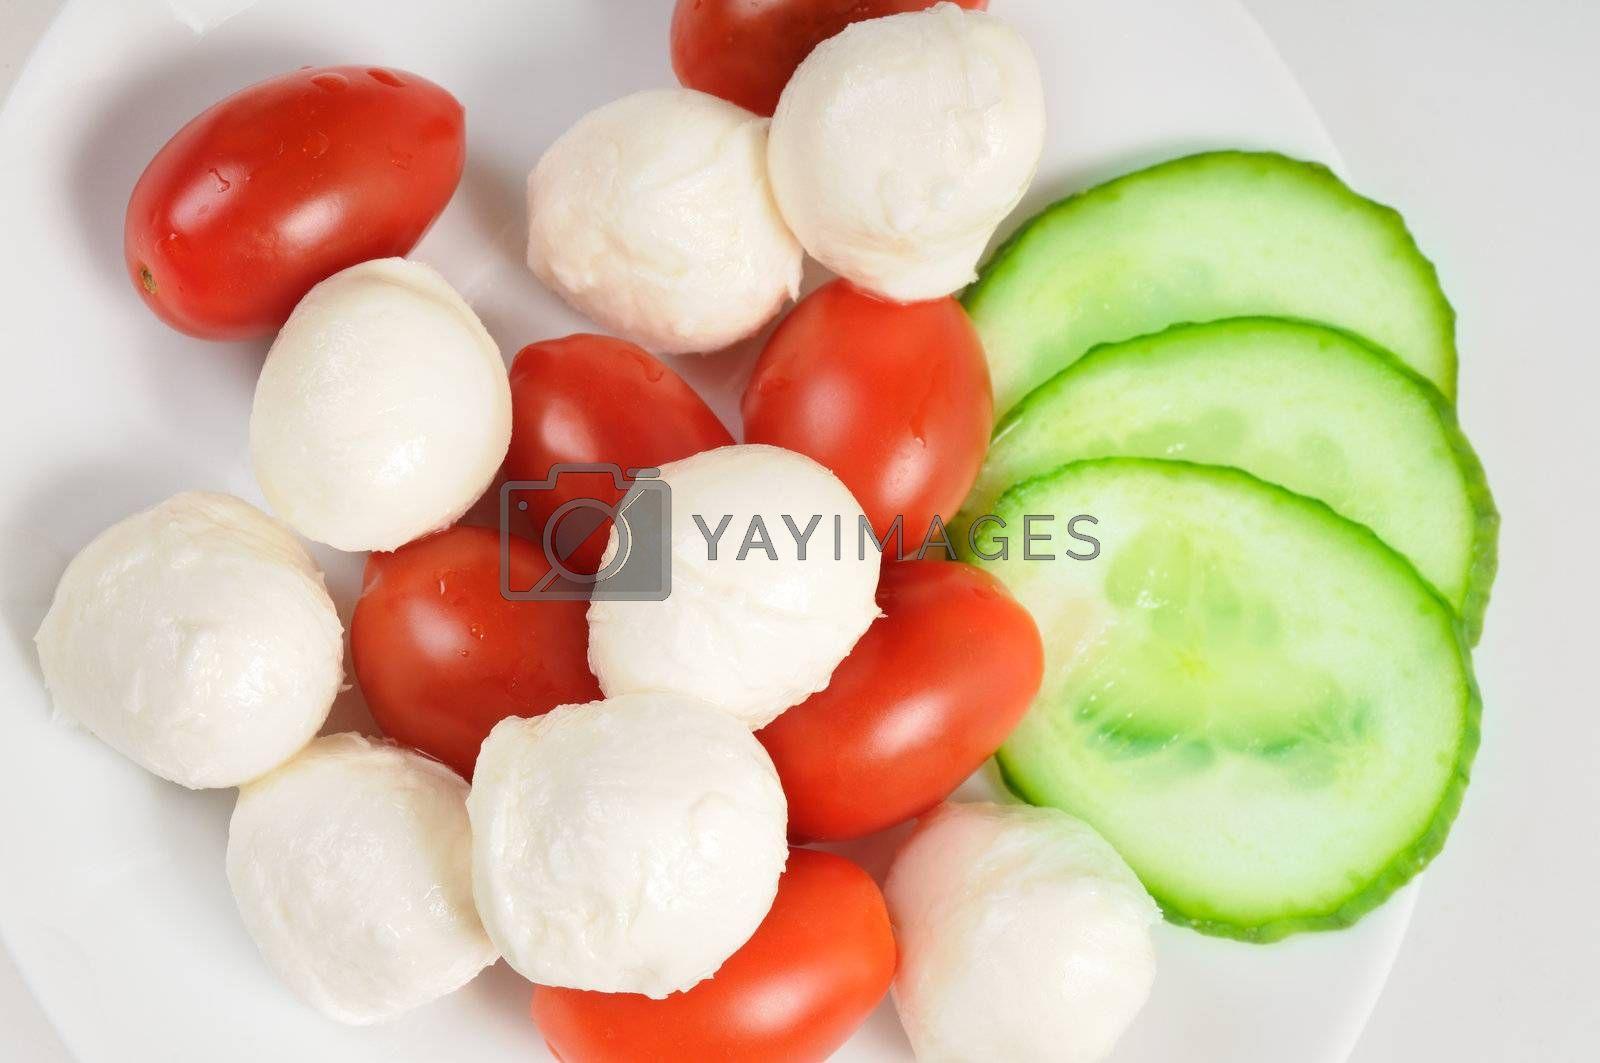 Diet salad with cherry tomatoes and mozzarella.